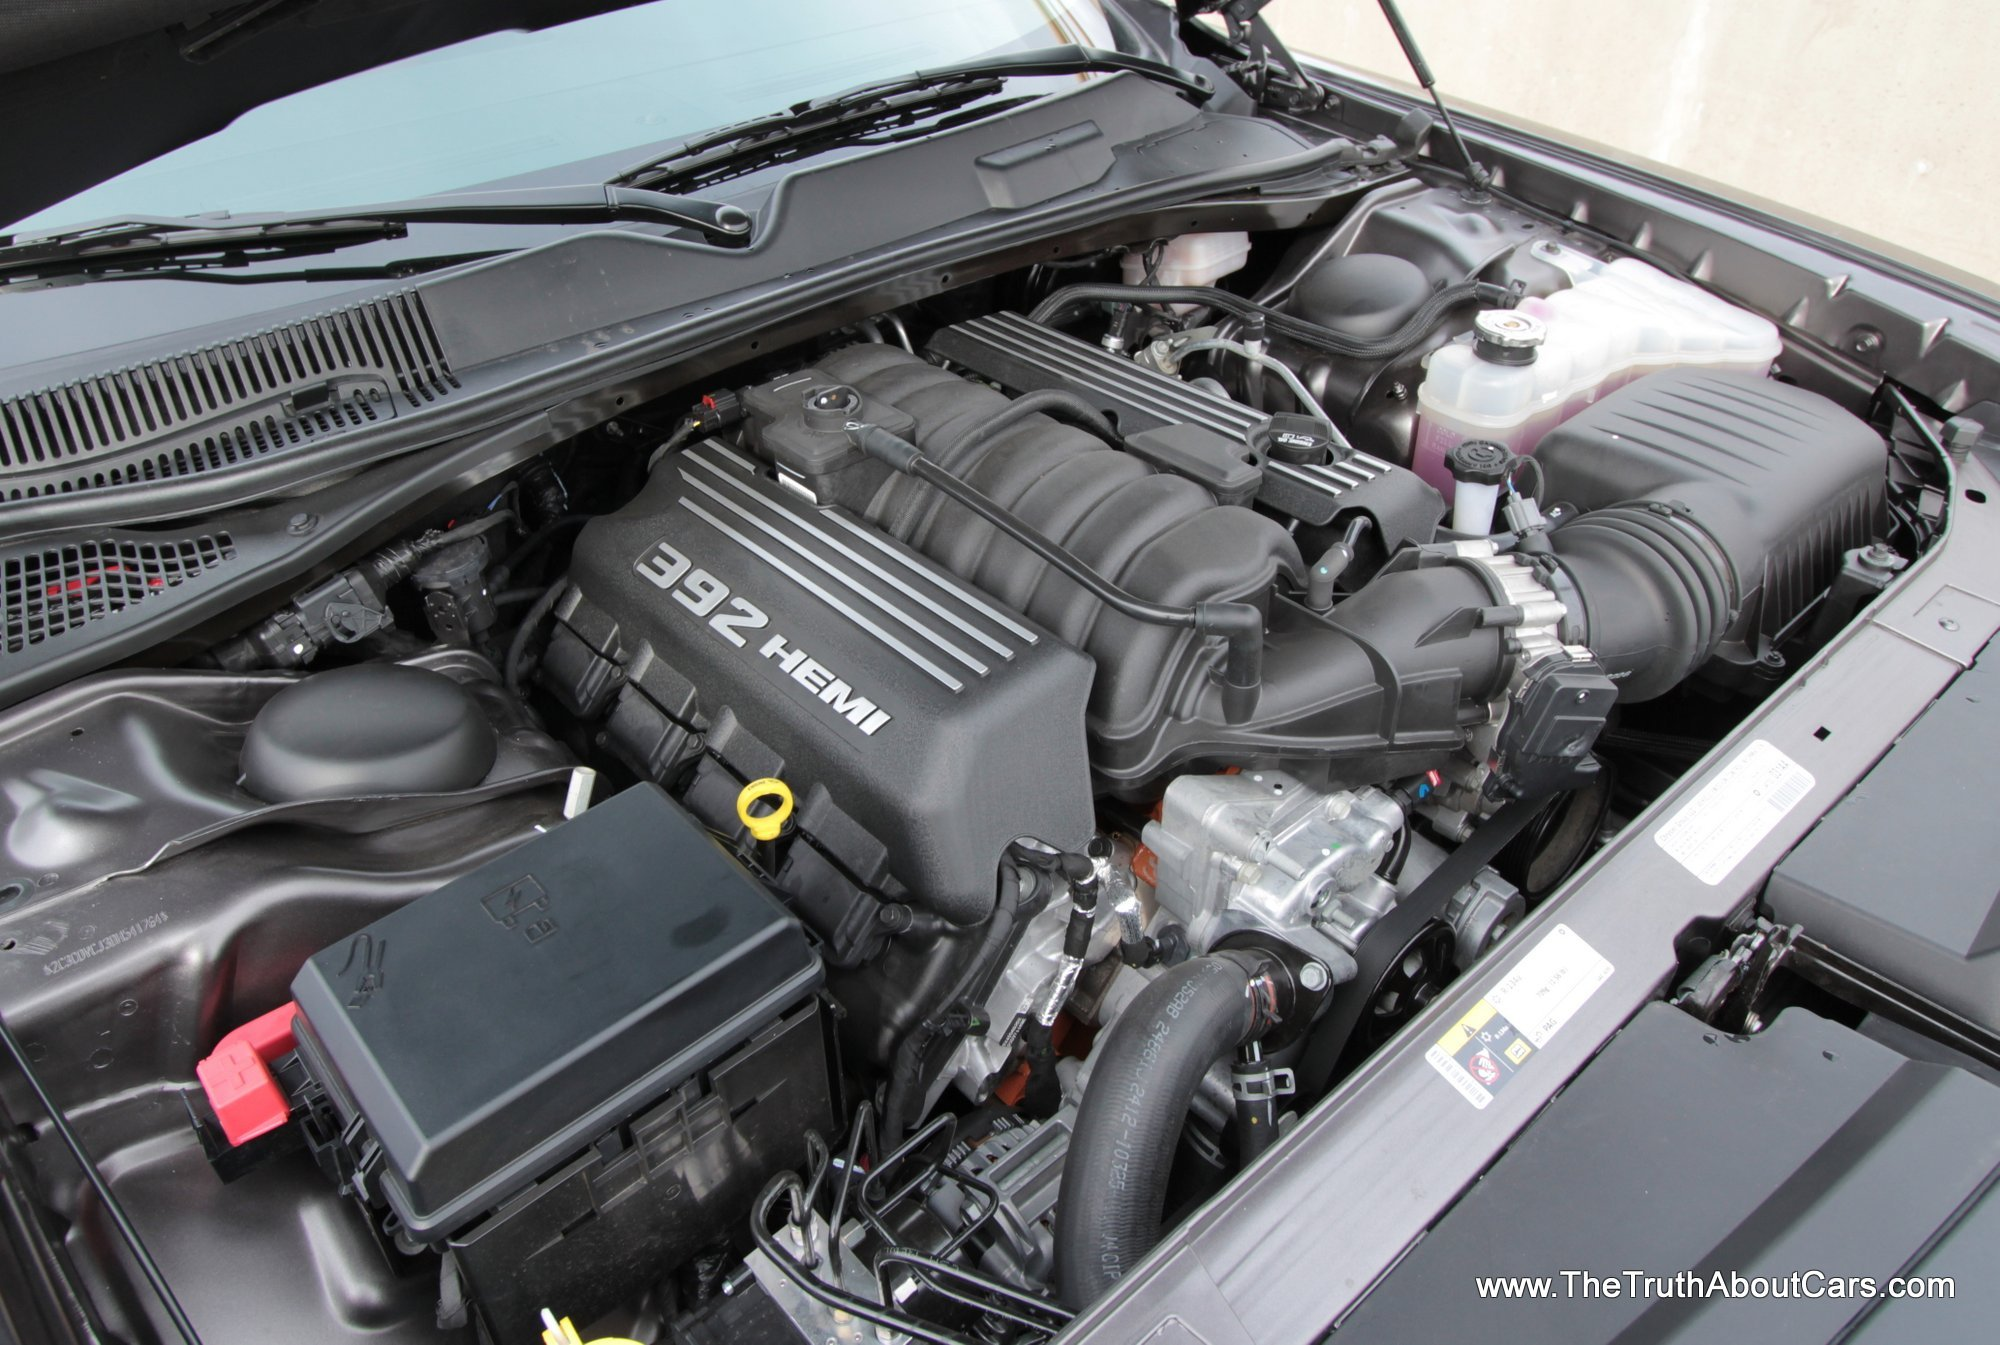 6 4l Hemi Engine Diagram Wiring Libraries Dodge Challenger Review 2013 Srt8 392 Video The Truth About Cars